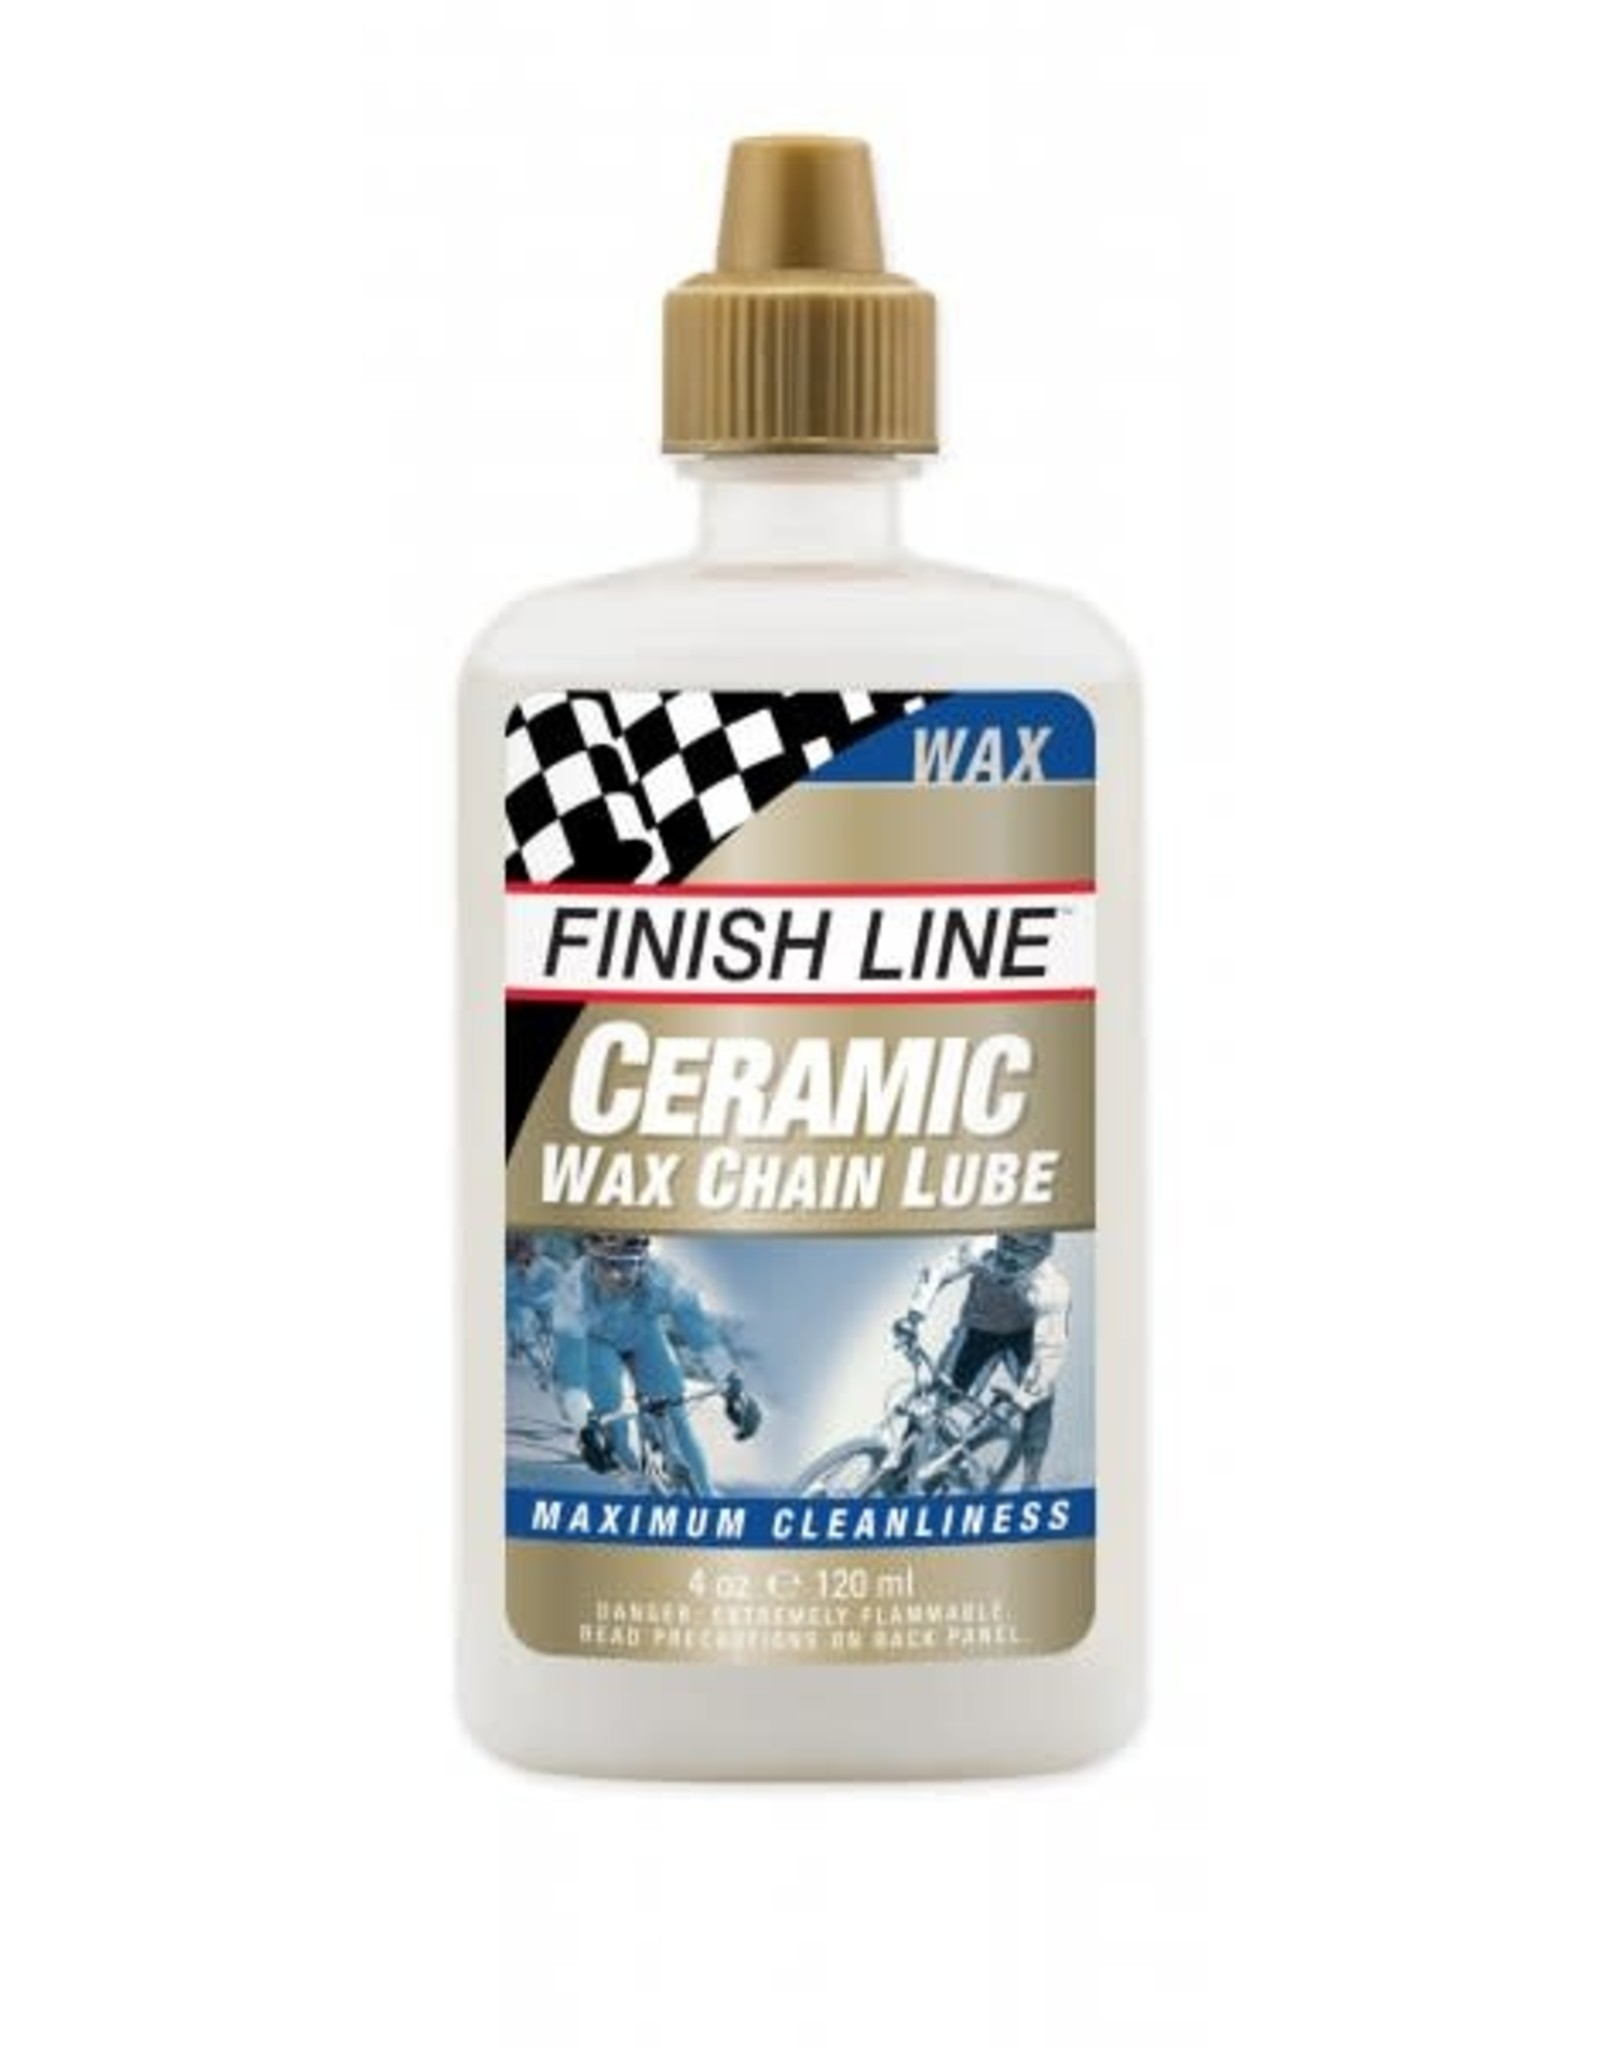 FINISH LINE, Ceramic Wax Lube, 4oz